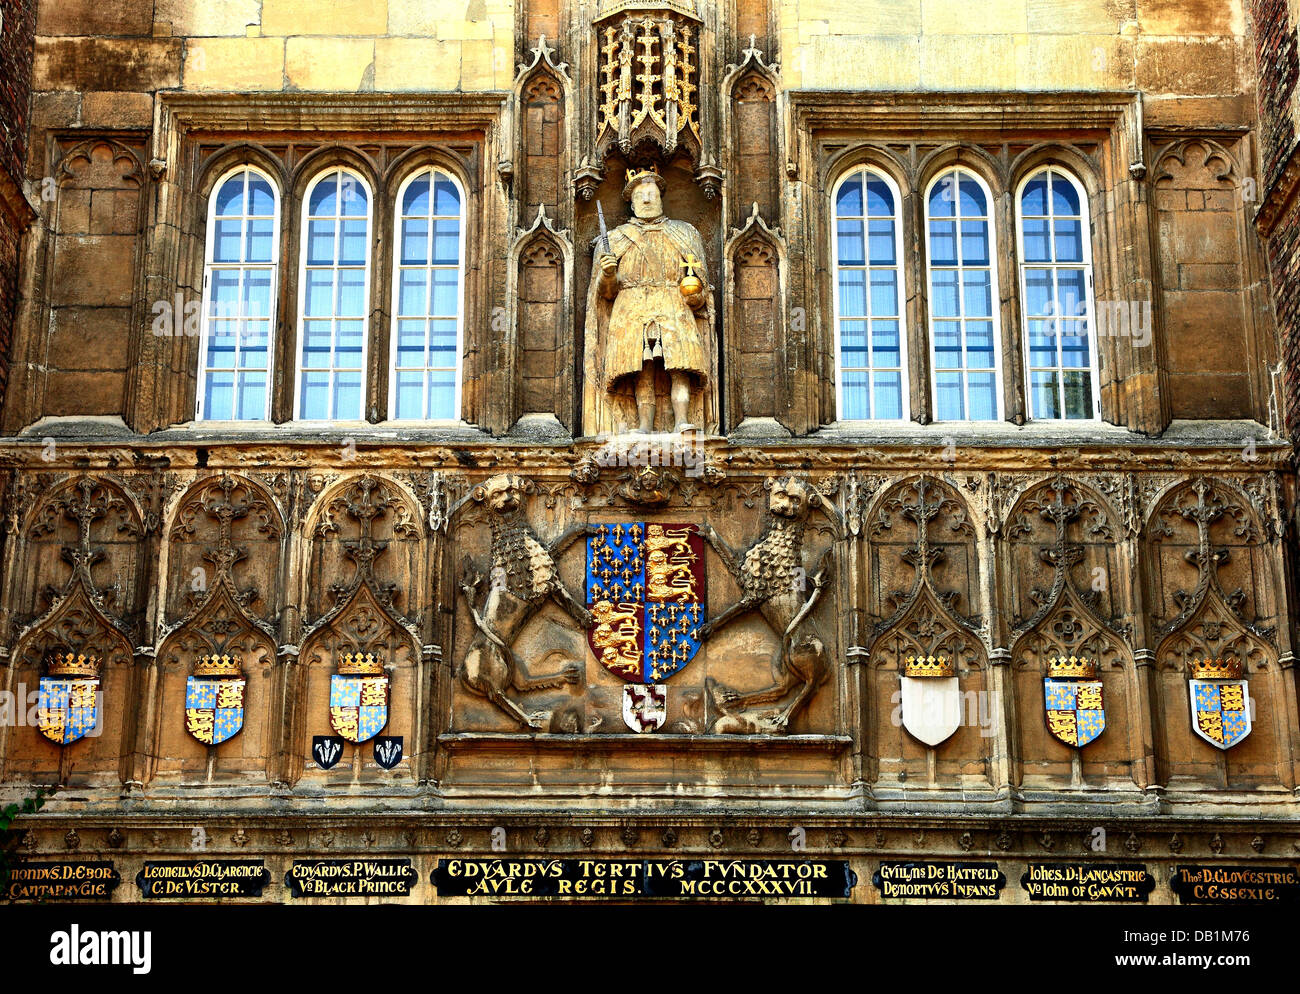 Cambridge, Trinity College gateway, heraldry and statue of King Henry 8th with chair leg, University, England UK - Stock Image